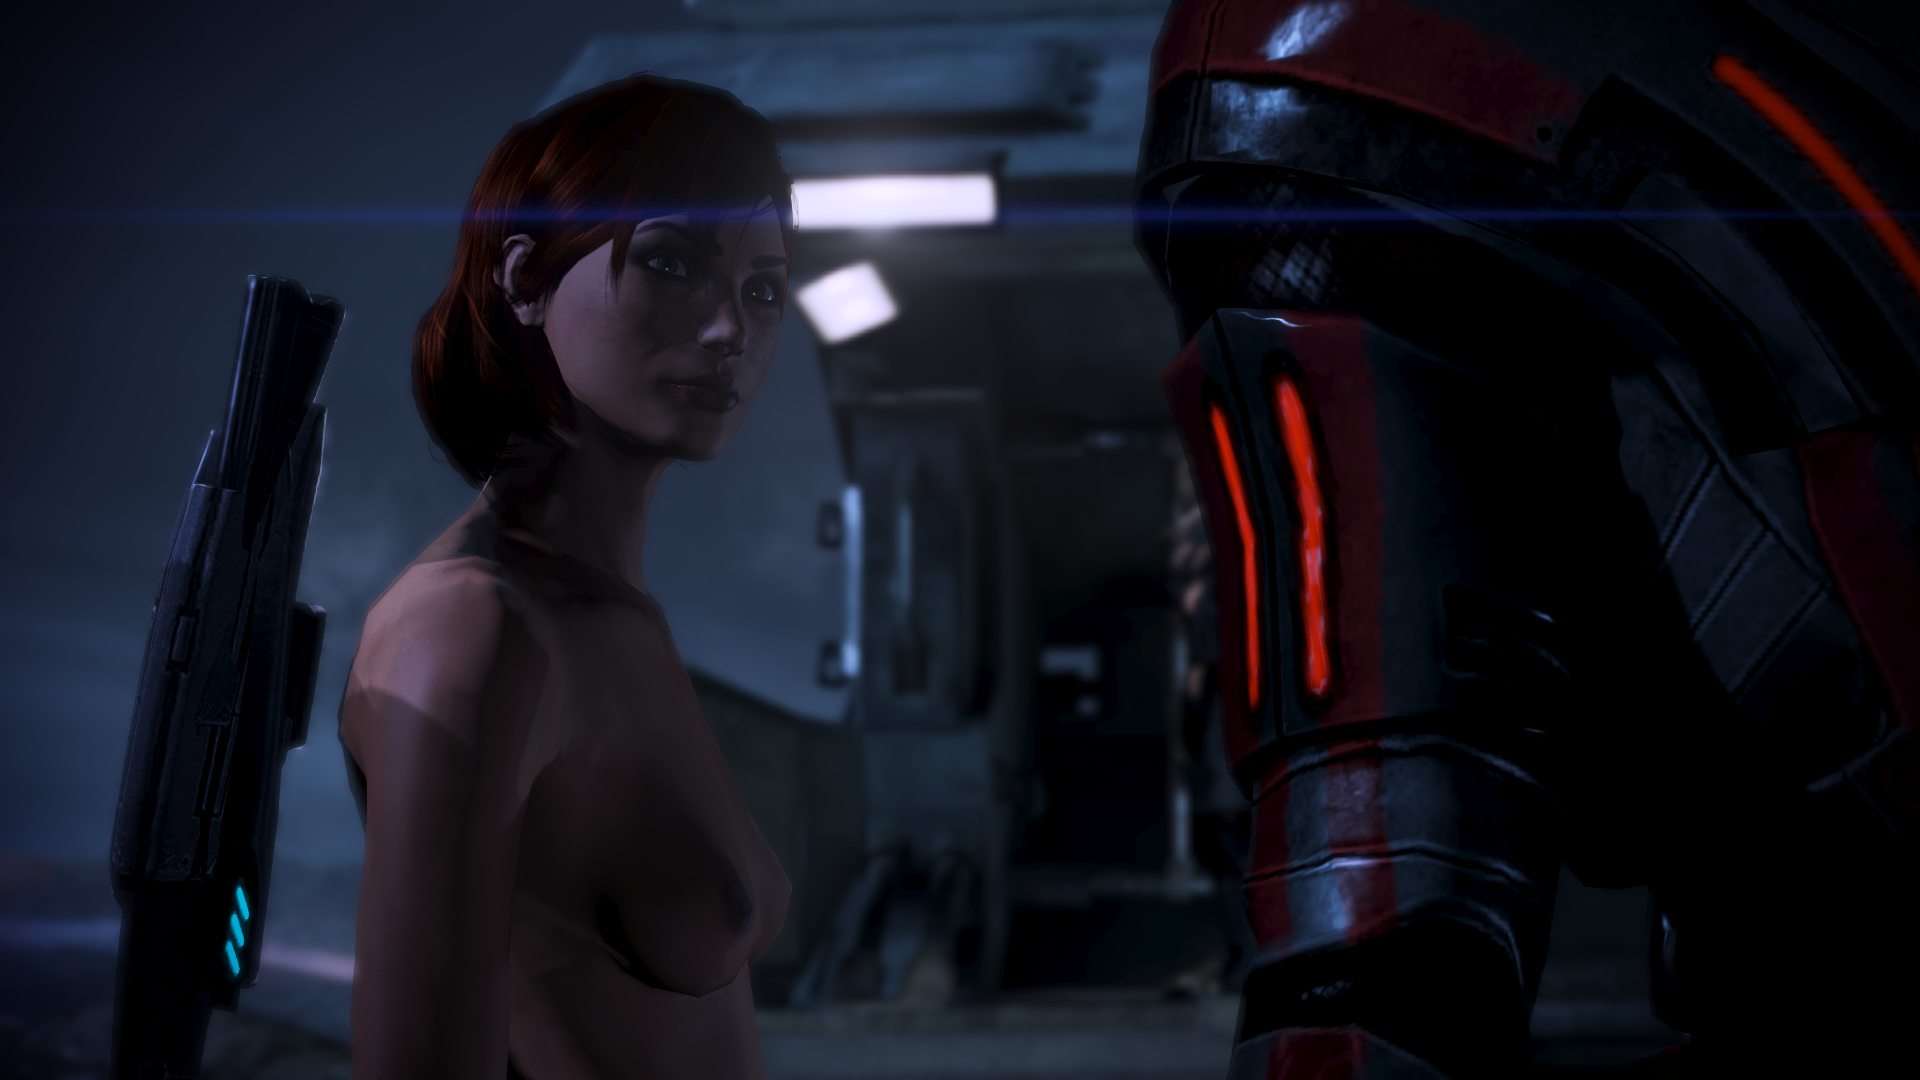 Mass effect 3 nude mode sexy pics